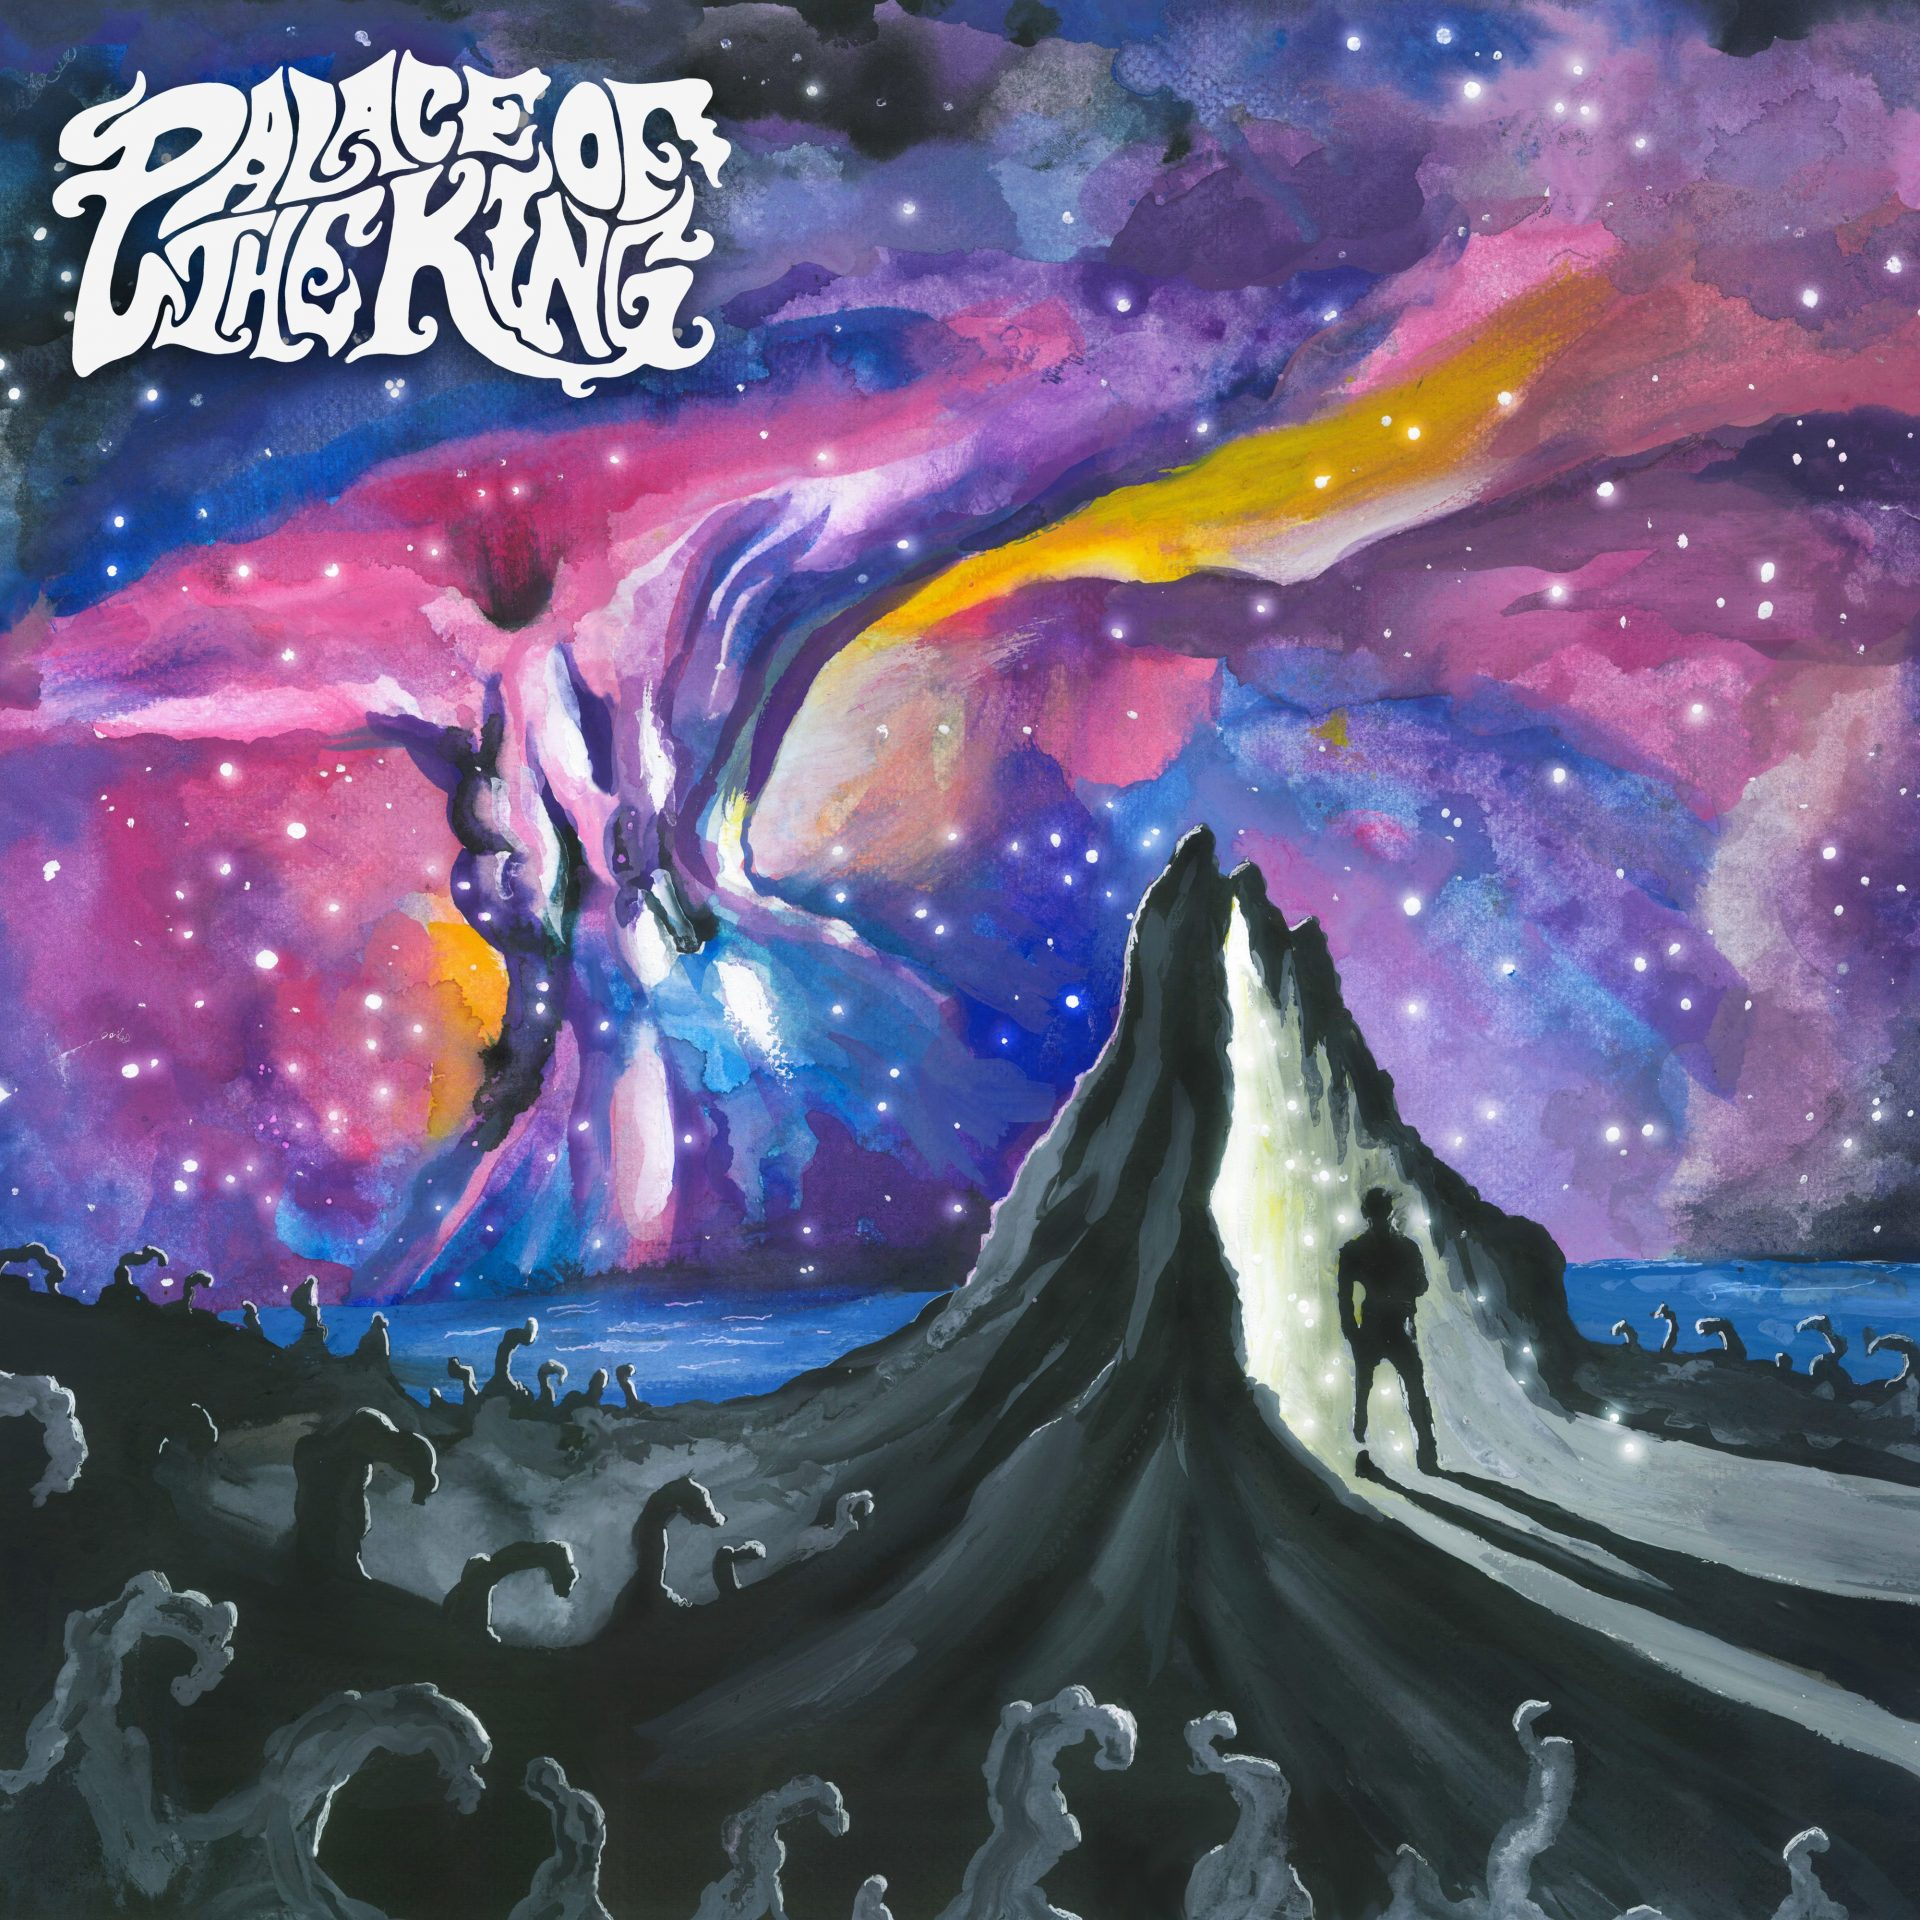 palace of the king album cover